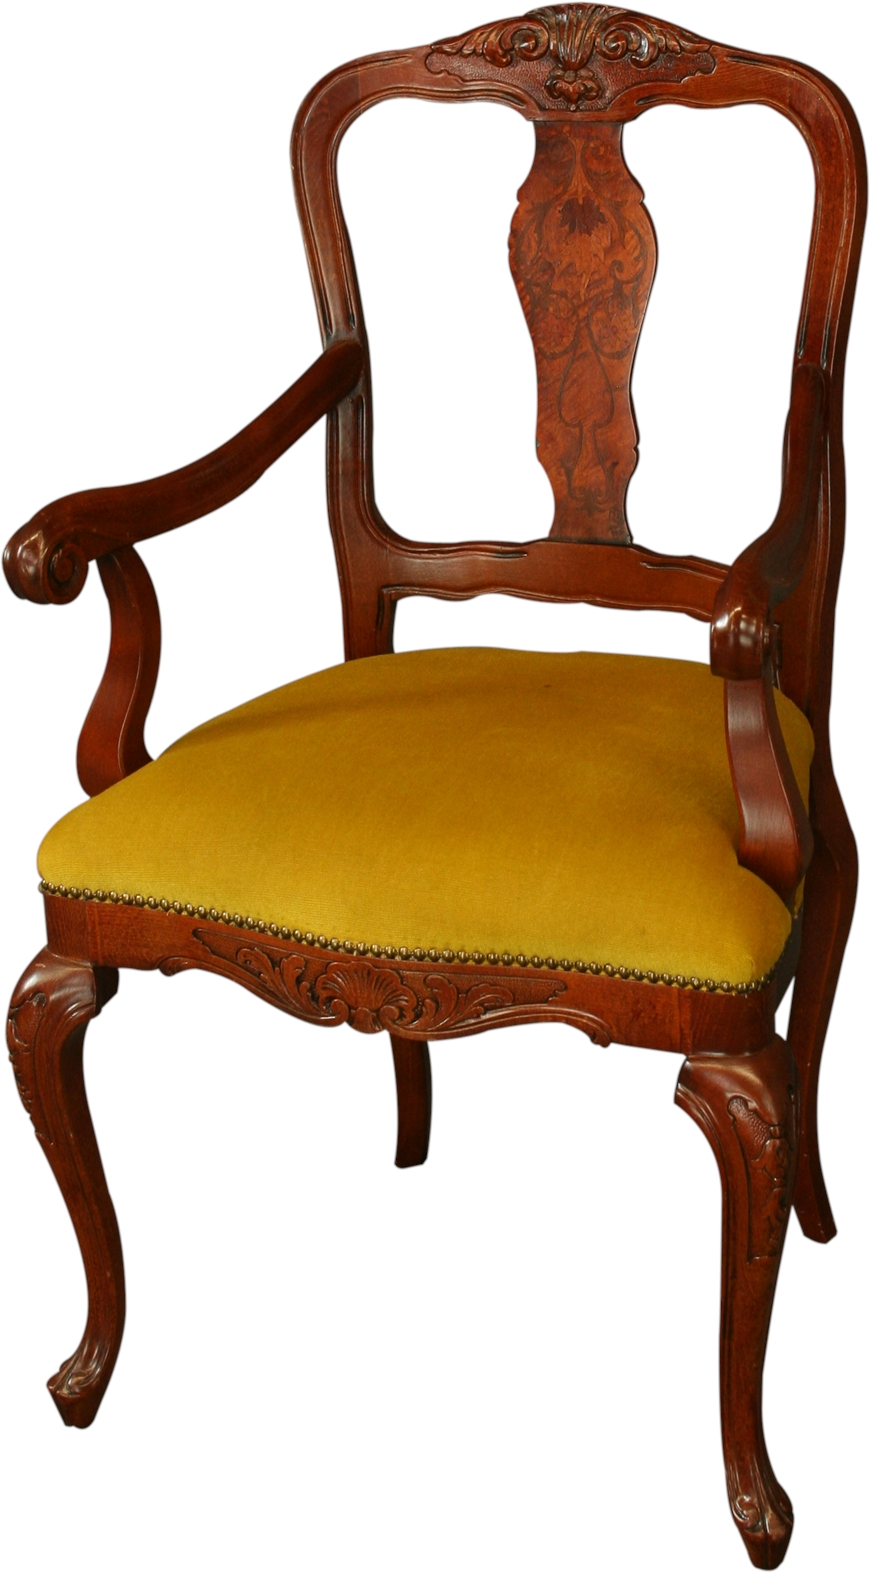 Large reproduction italian rococo arm chair inlaid for Rococo furniture reproductions